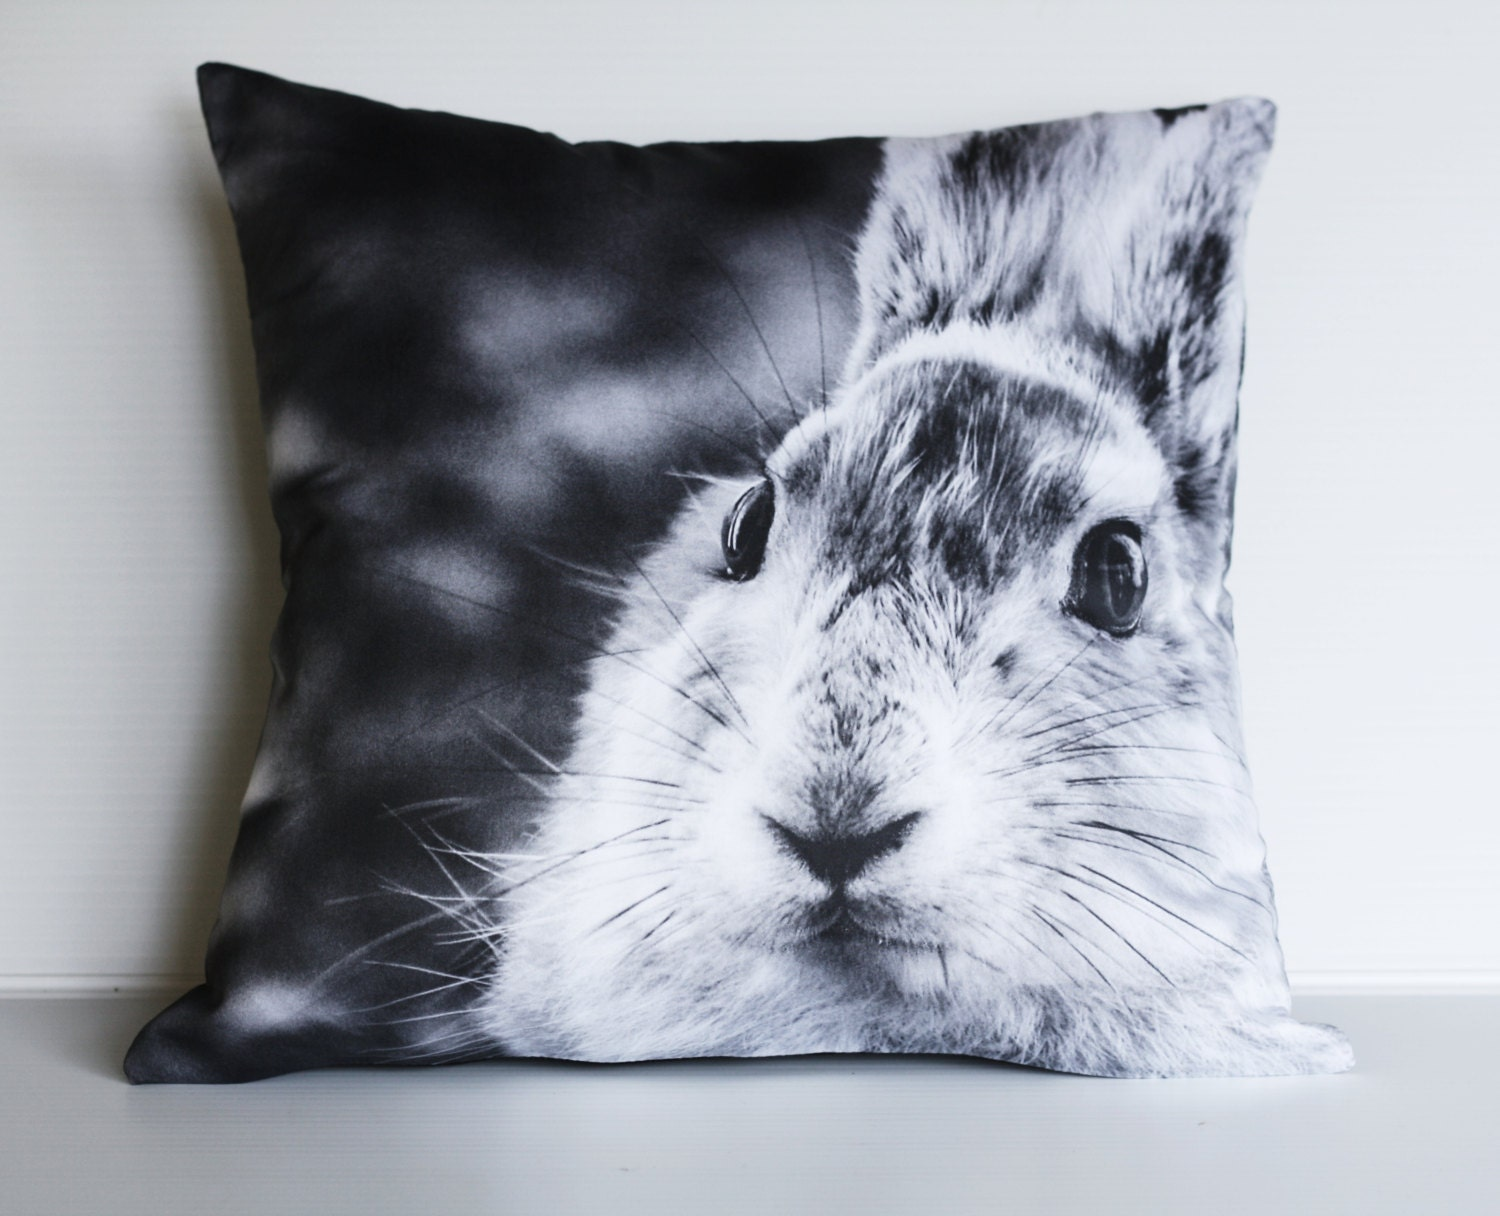 Animal Pillows : Rabbit cushion/ animal pillow/ kids decor/ 16 cushion/